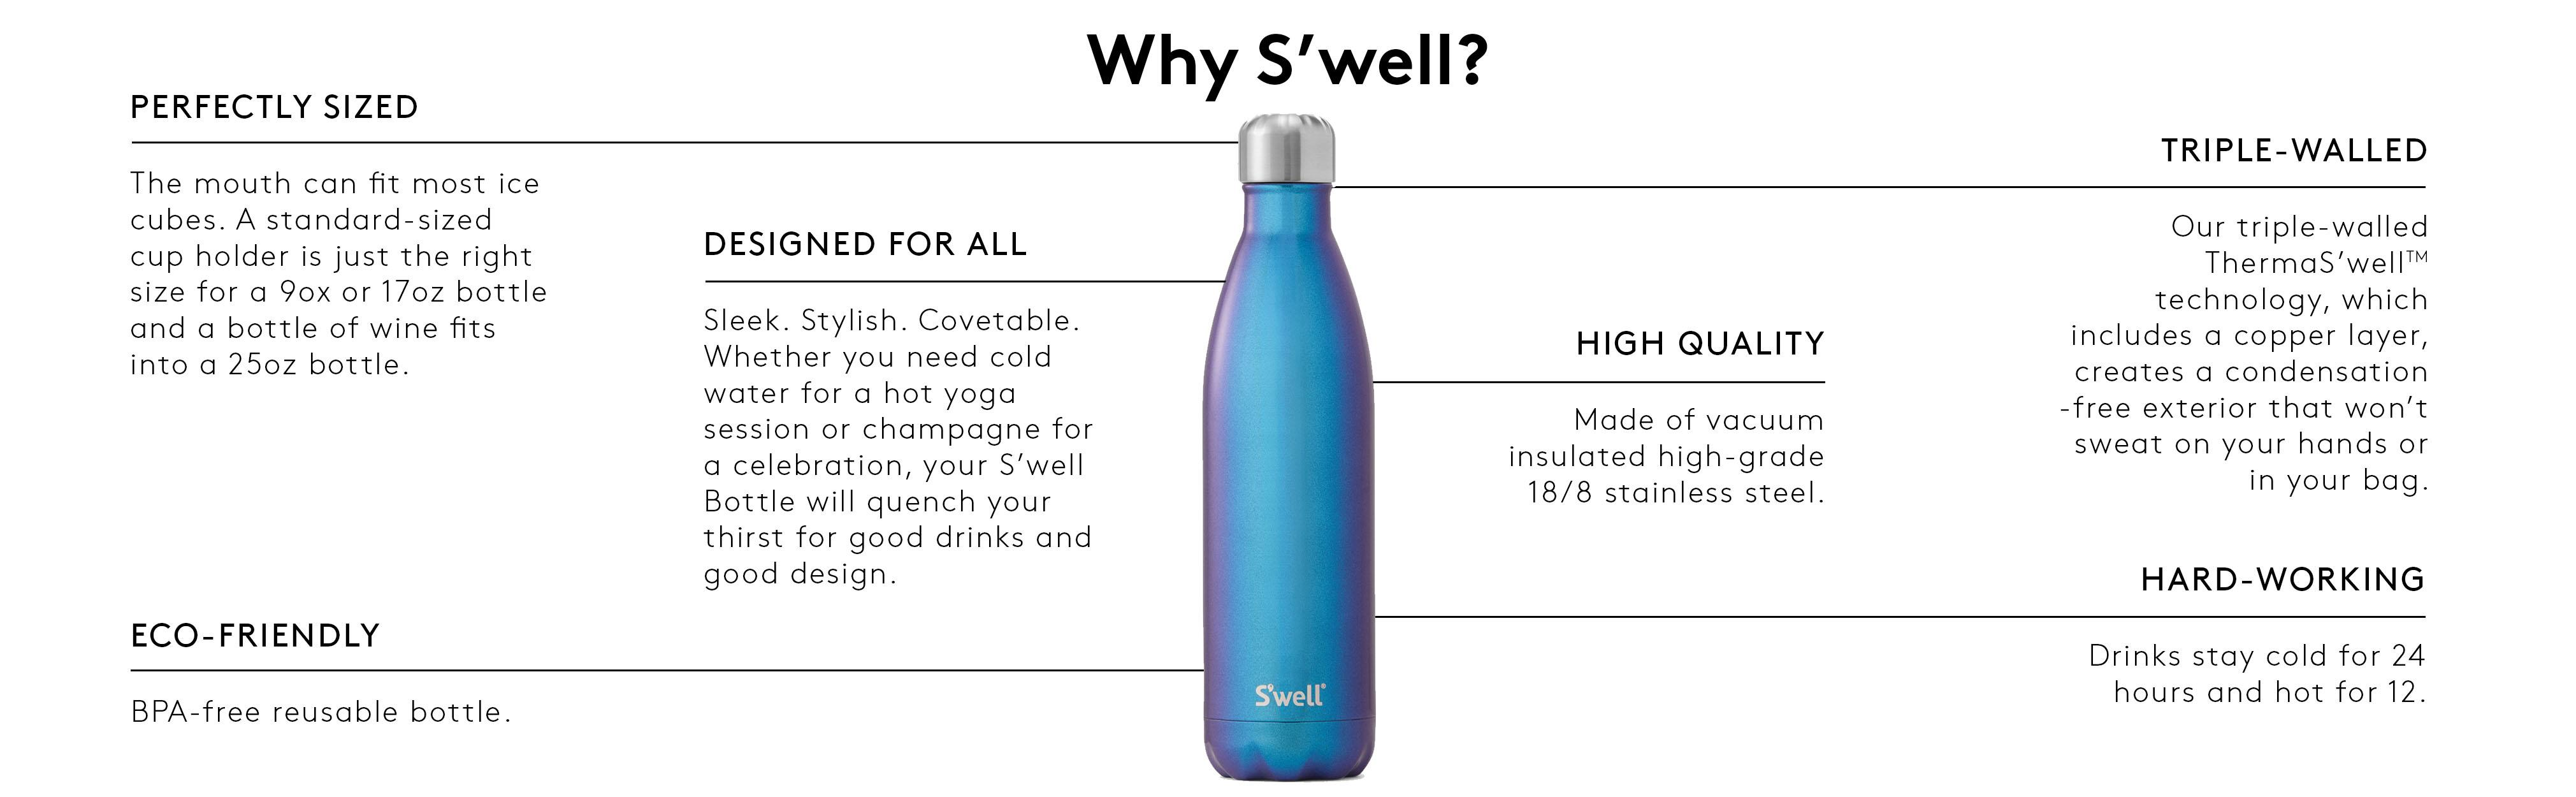 Amazon Com S Well Vacuum Insulated Stainless Steel Water